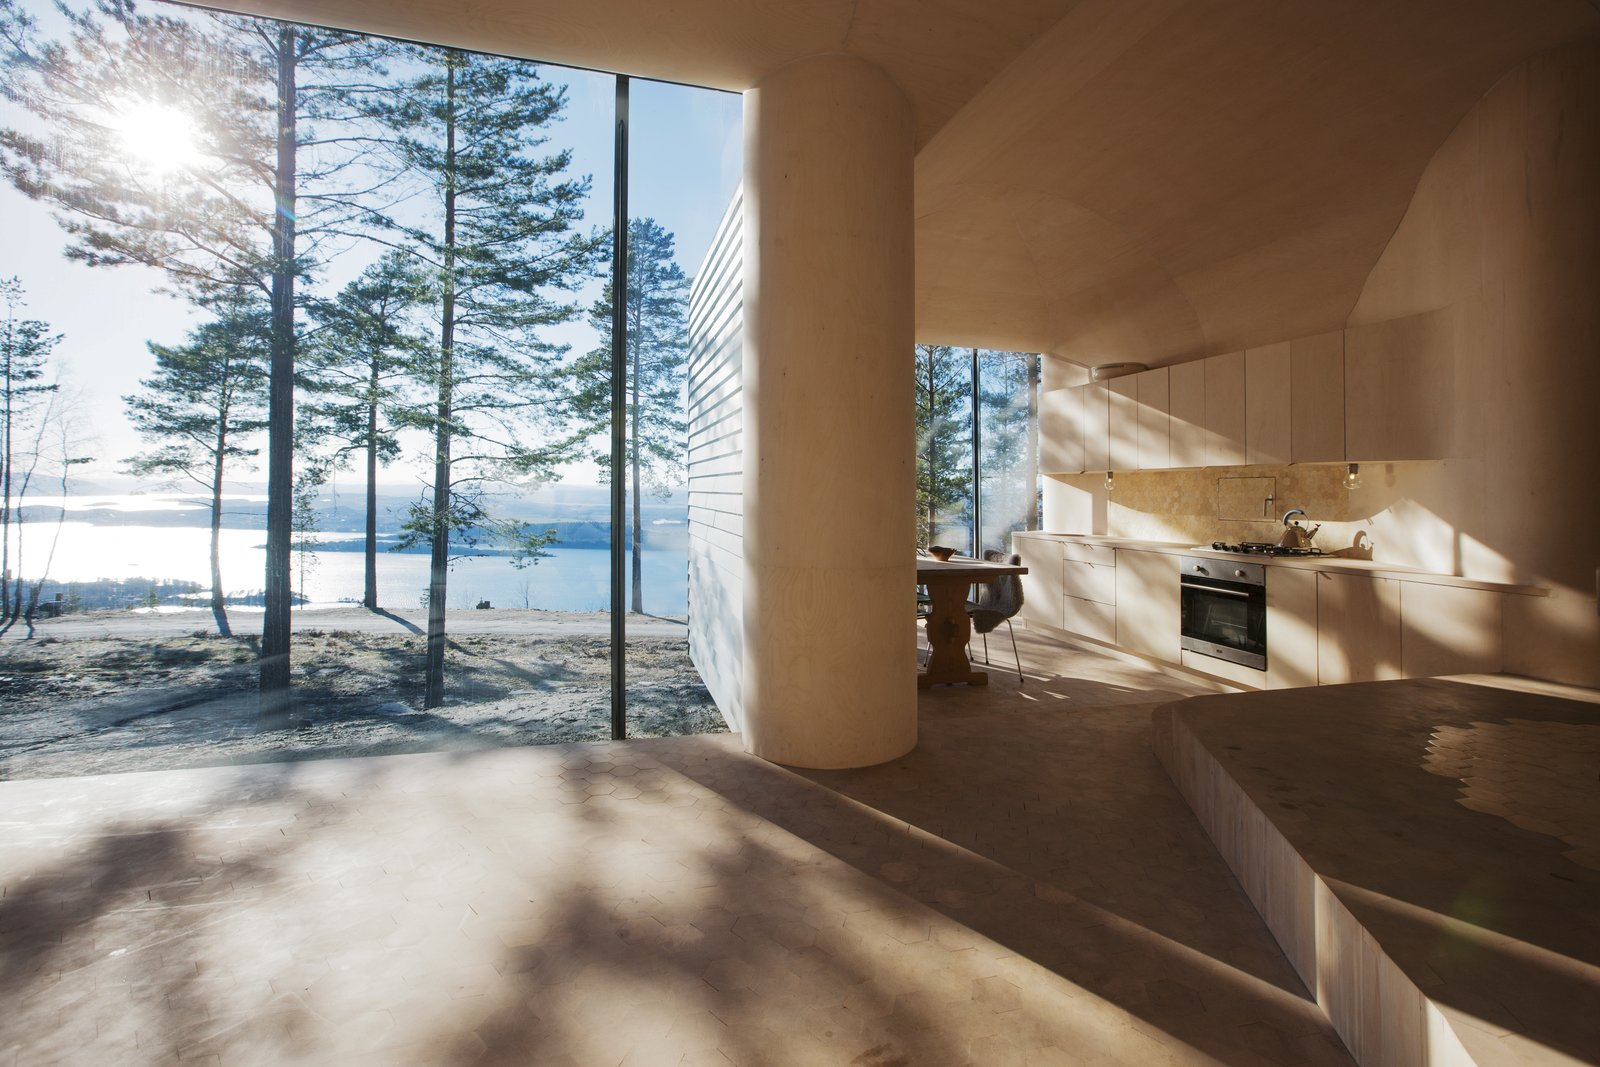 """The architects designed the large glass expanses in the dining and living areas so that their frames are hidden from view. """"I love the way the light comes into the cabin and meets the curved surfaces of the walls and ceilings,"""" Bae Brandtzæg says. The kitchen's custom cabinets were designed by Atelier Oslo and constructed by the contractor, Byggmester Bård Bredesen. The gas-powered stove, oven, and fridge are by VERA.  Sweden"""